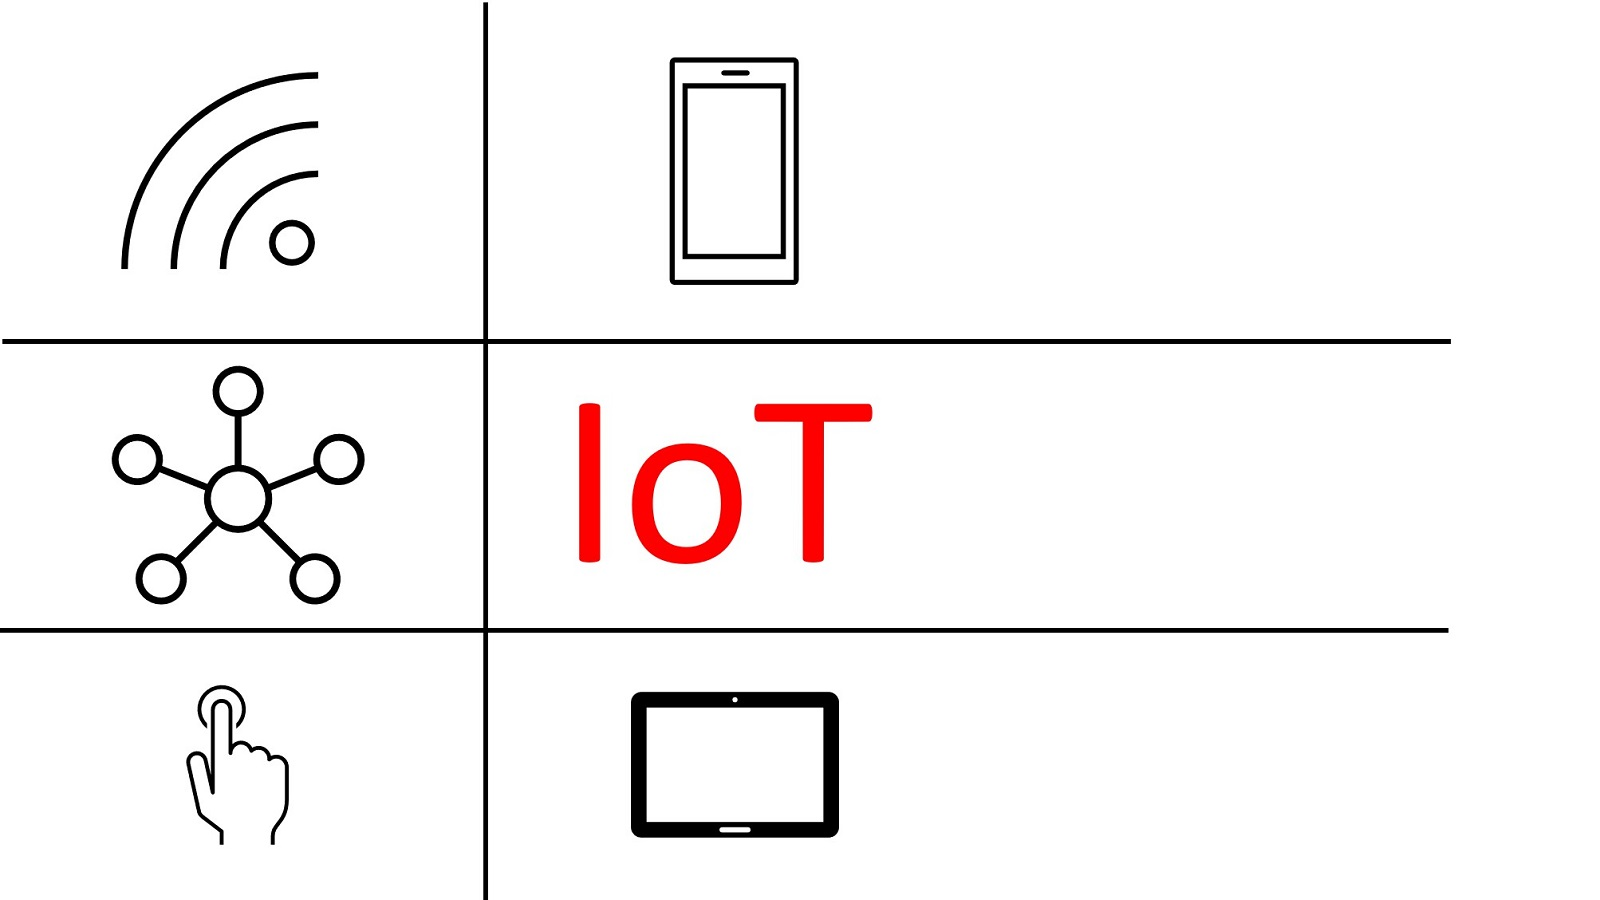 iot internet of things internet de las cosas